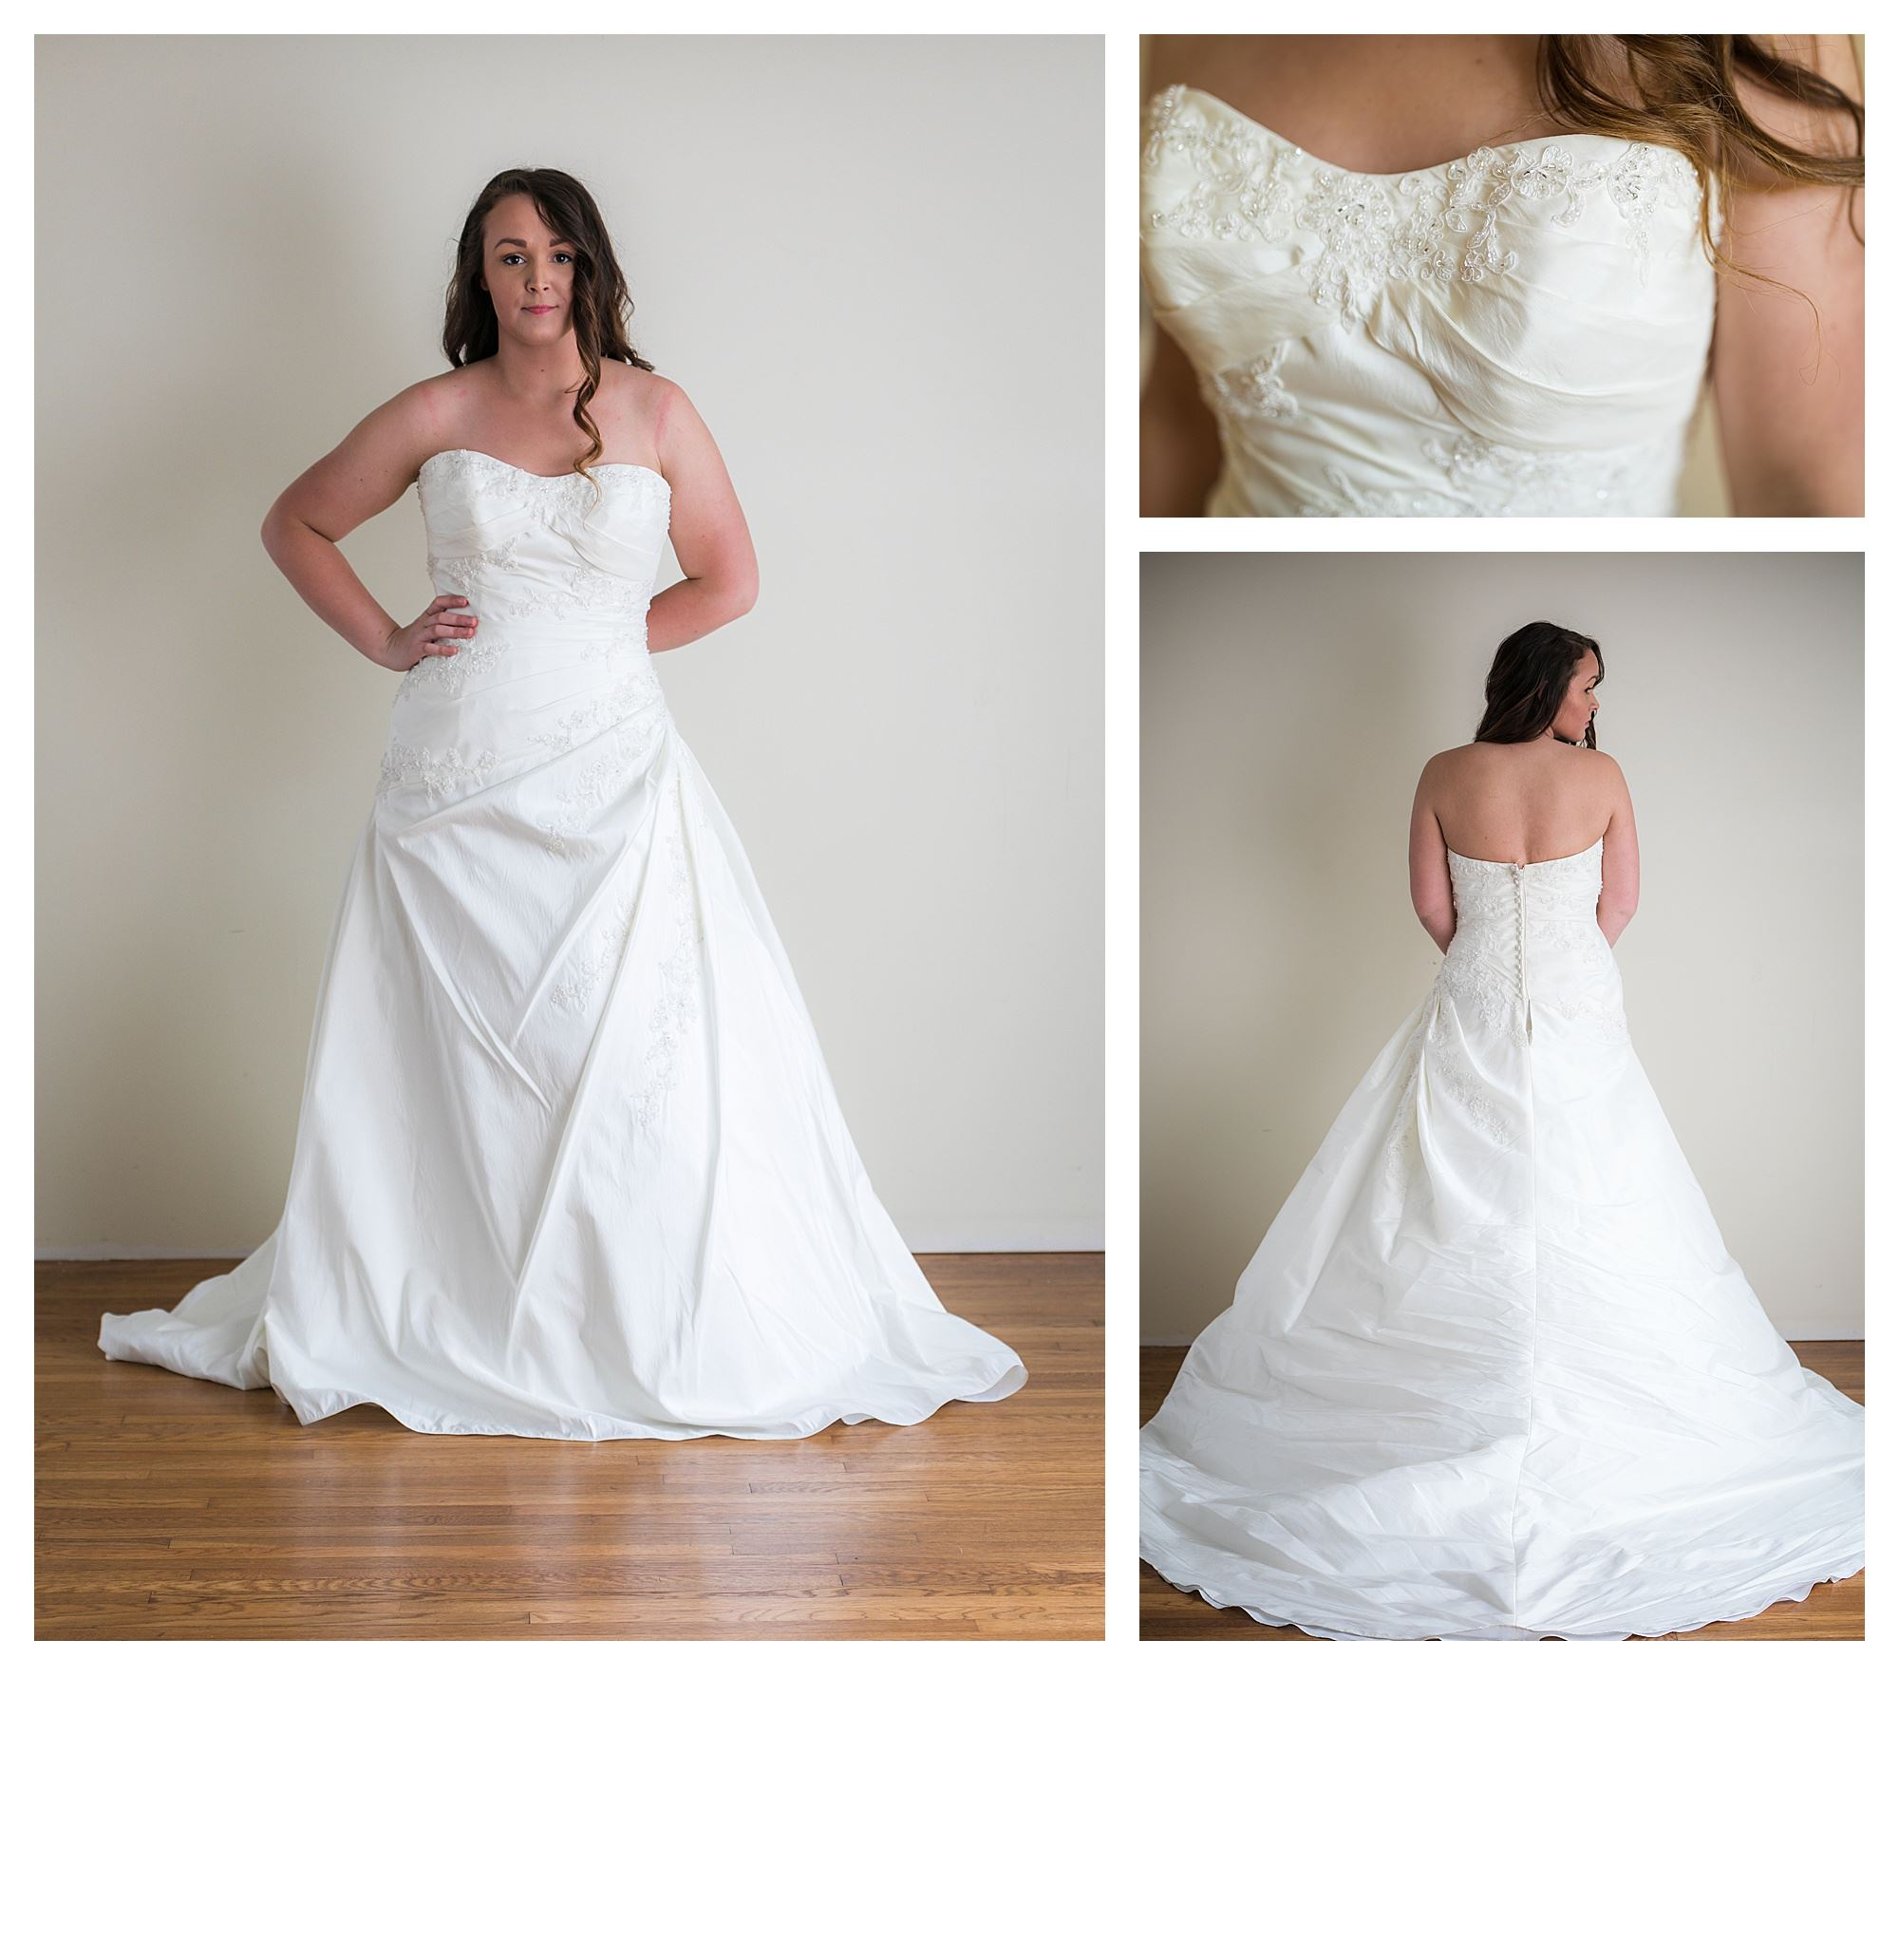 Saira - Size 12 - Ivory - Originally priced $999 - Sample box price $699